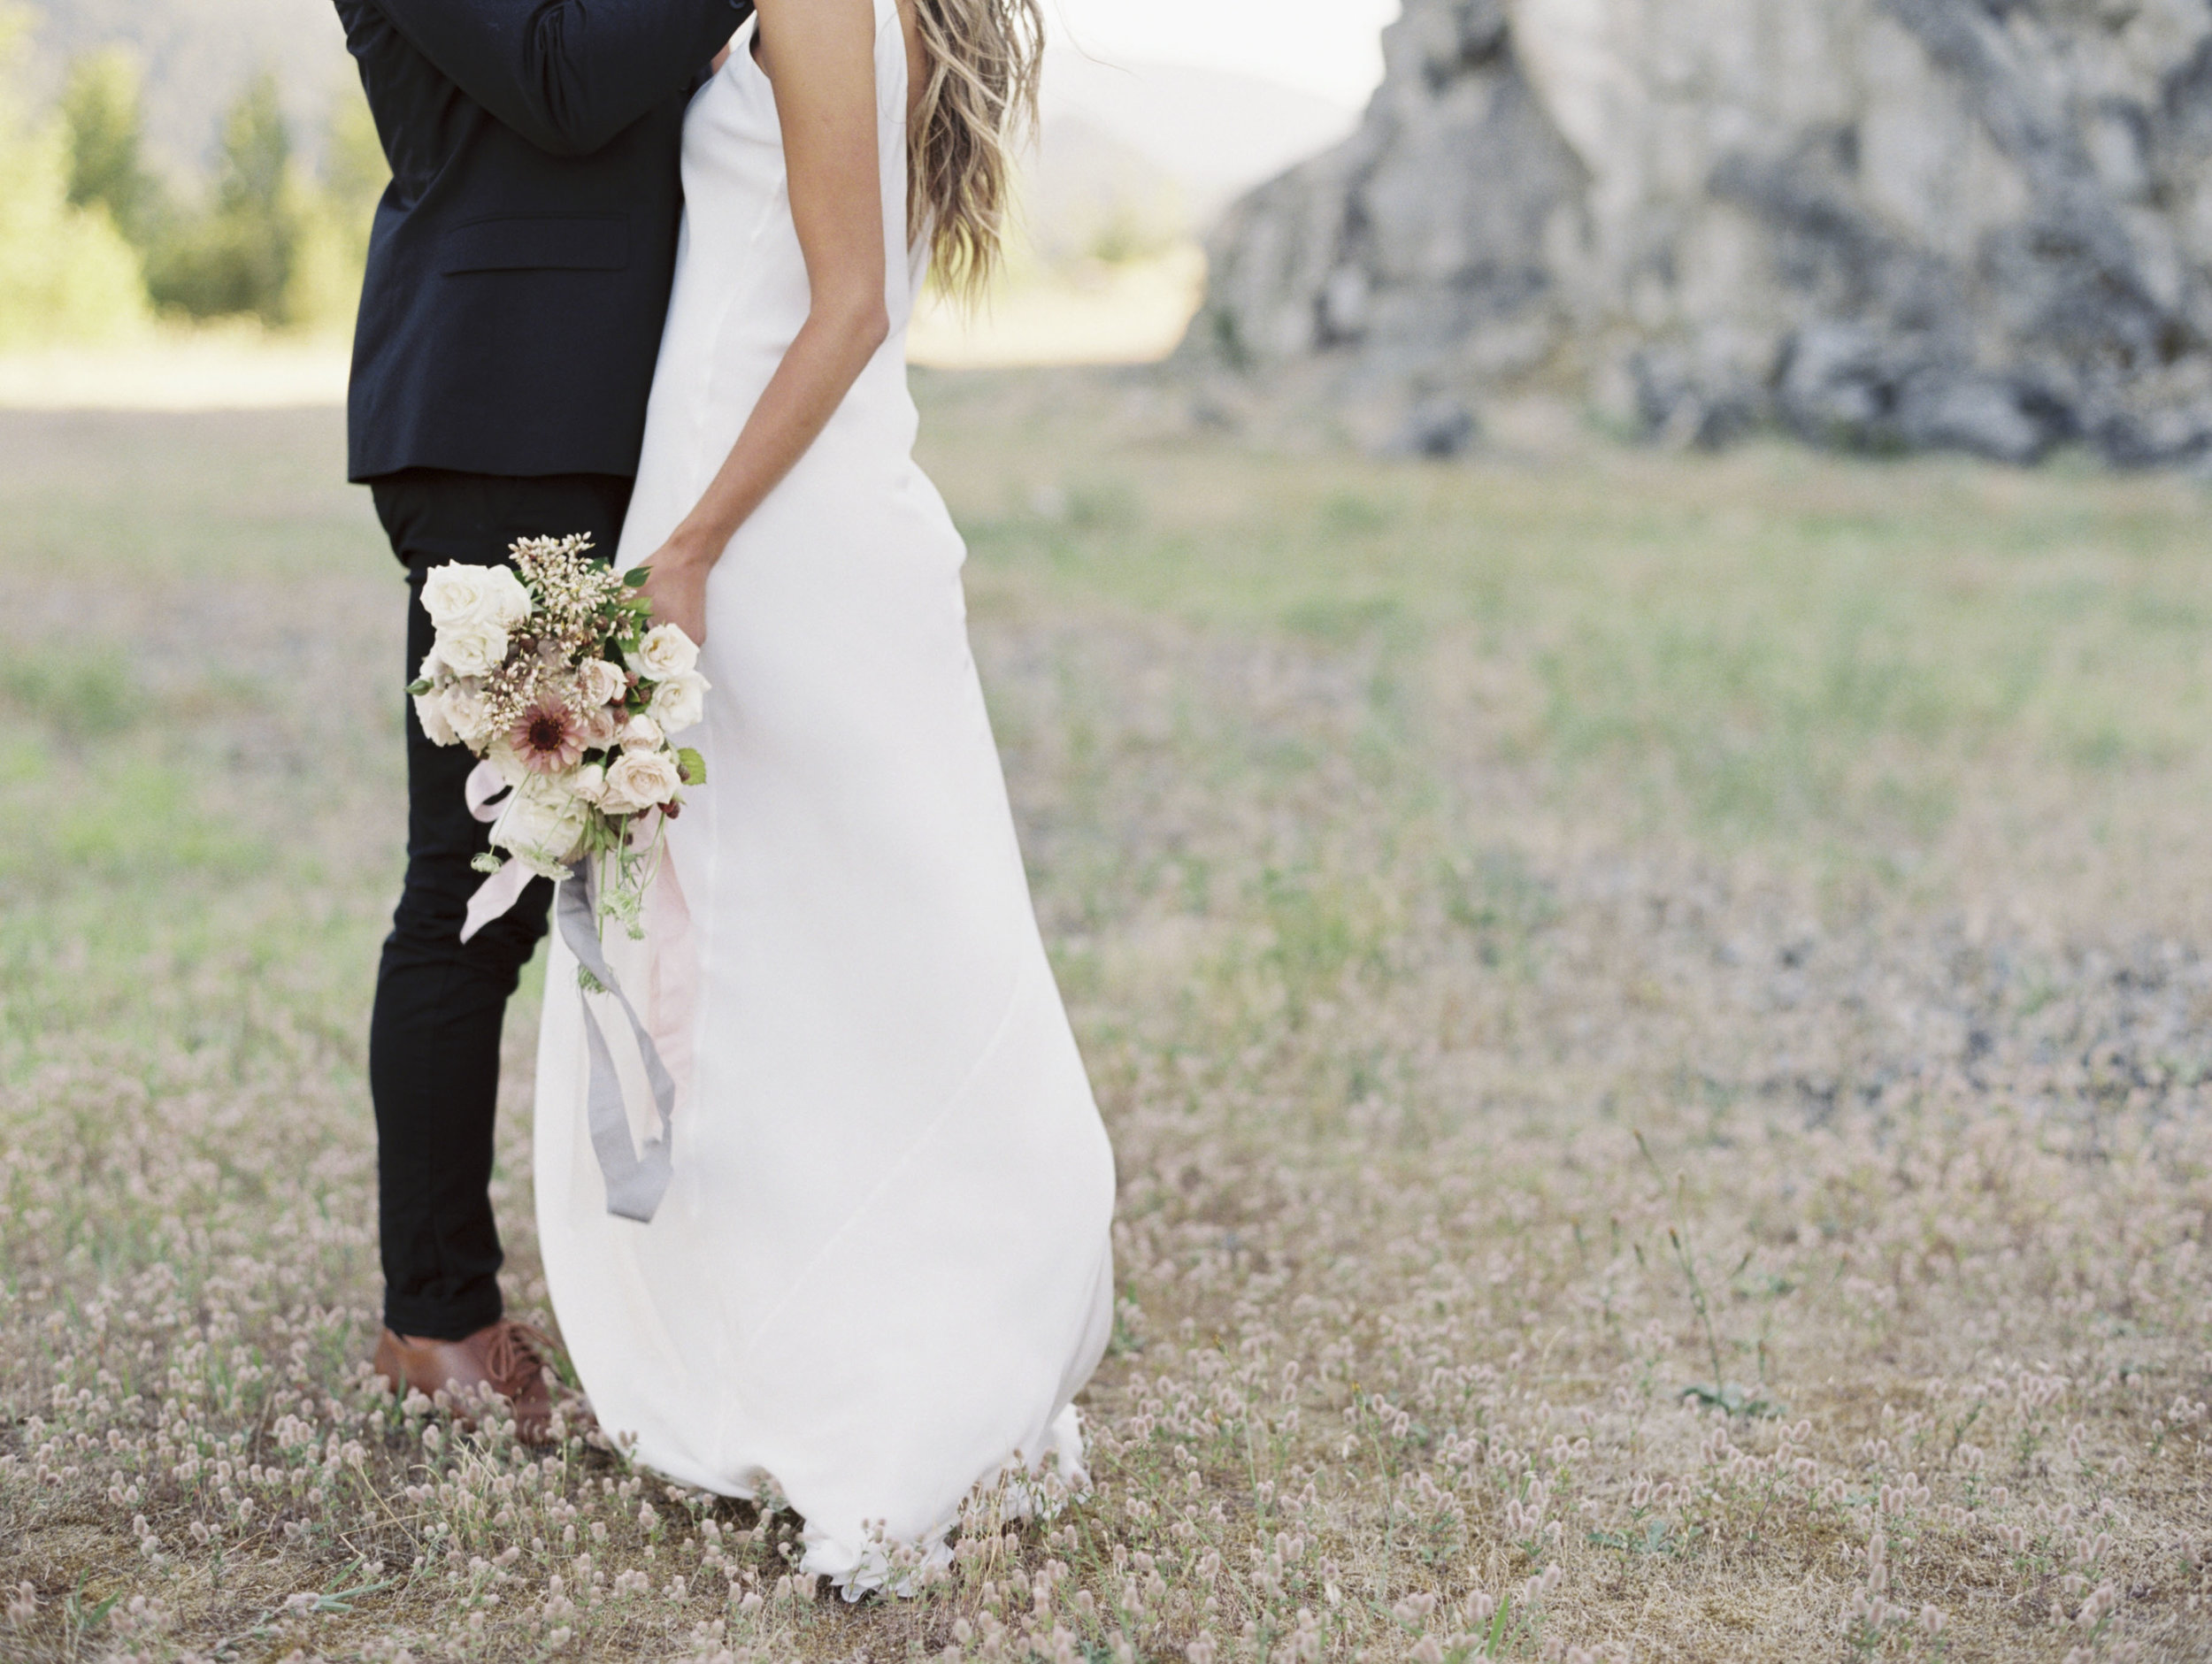 Oregon Elopement Photography, columbia gorge, Amanda Lenhardt Photography